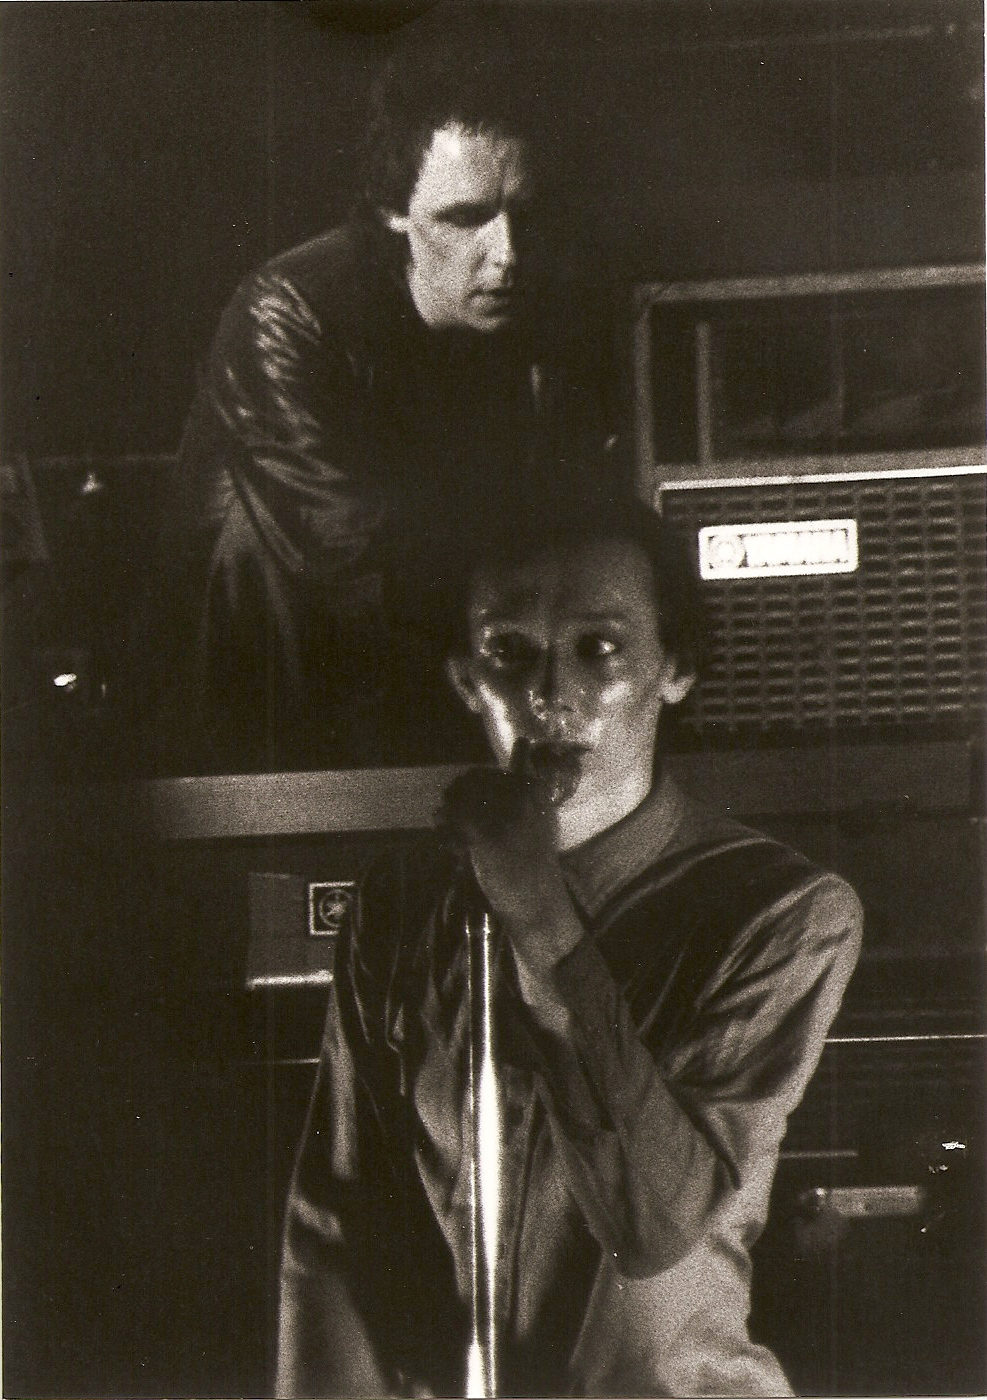 Magazine (Howard Devoto) - 1978 - Paris Le Palace